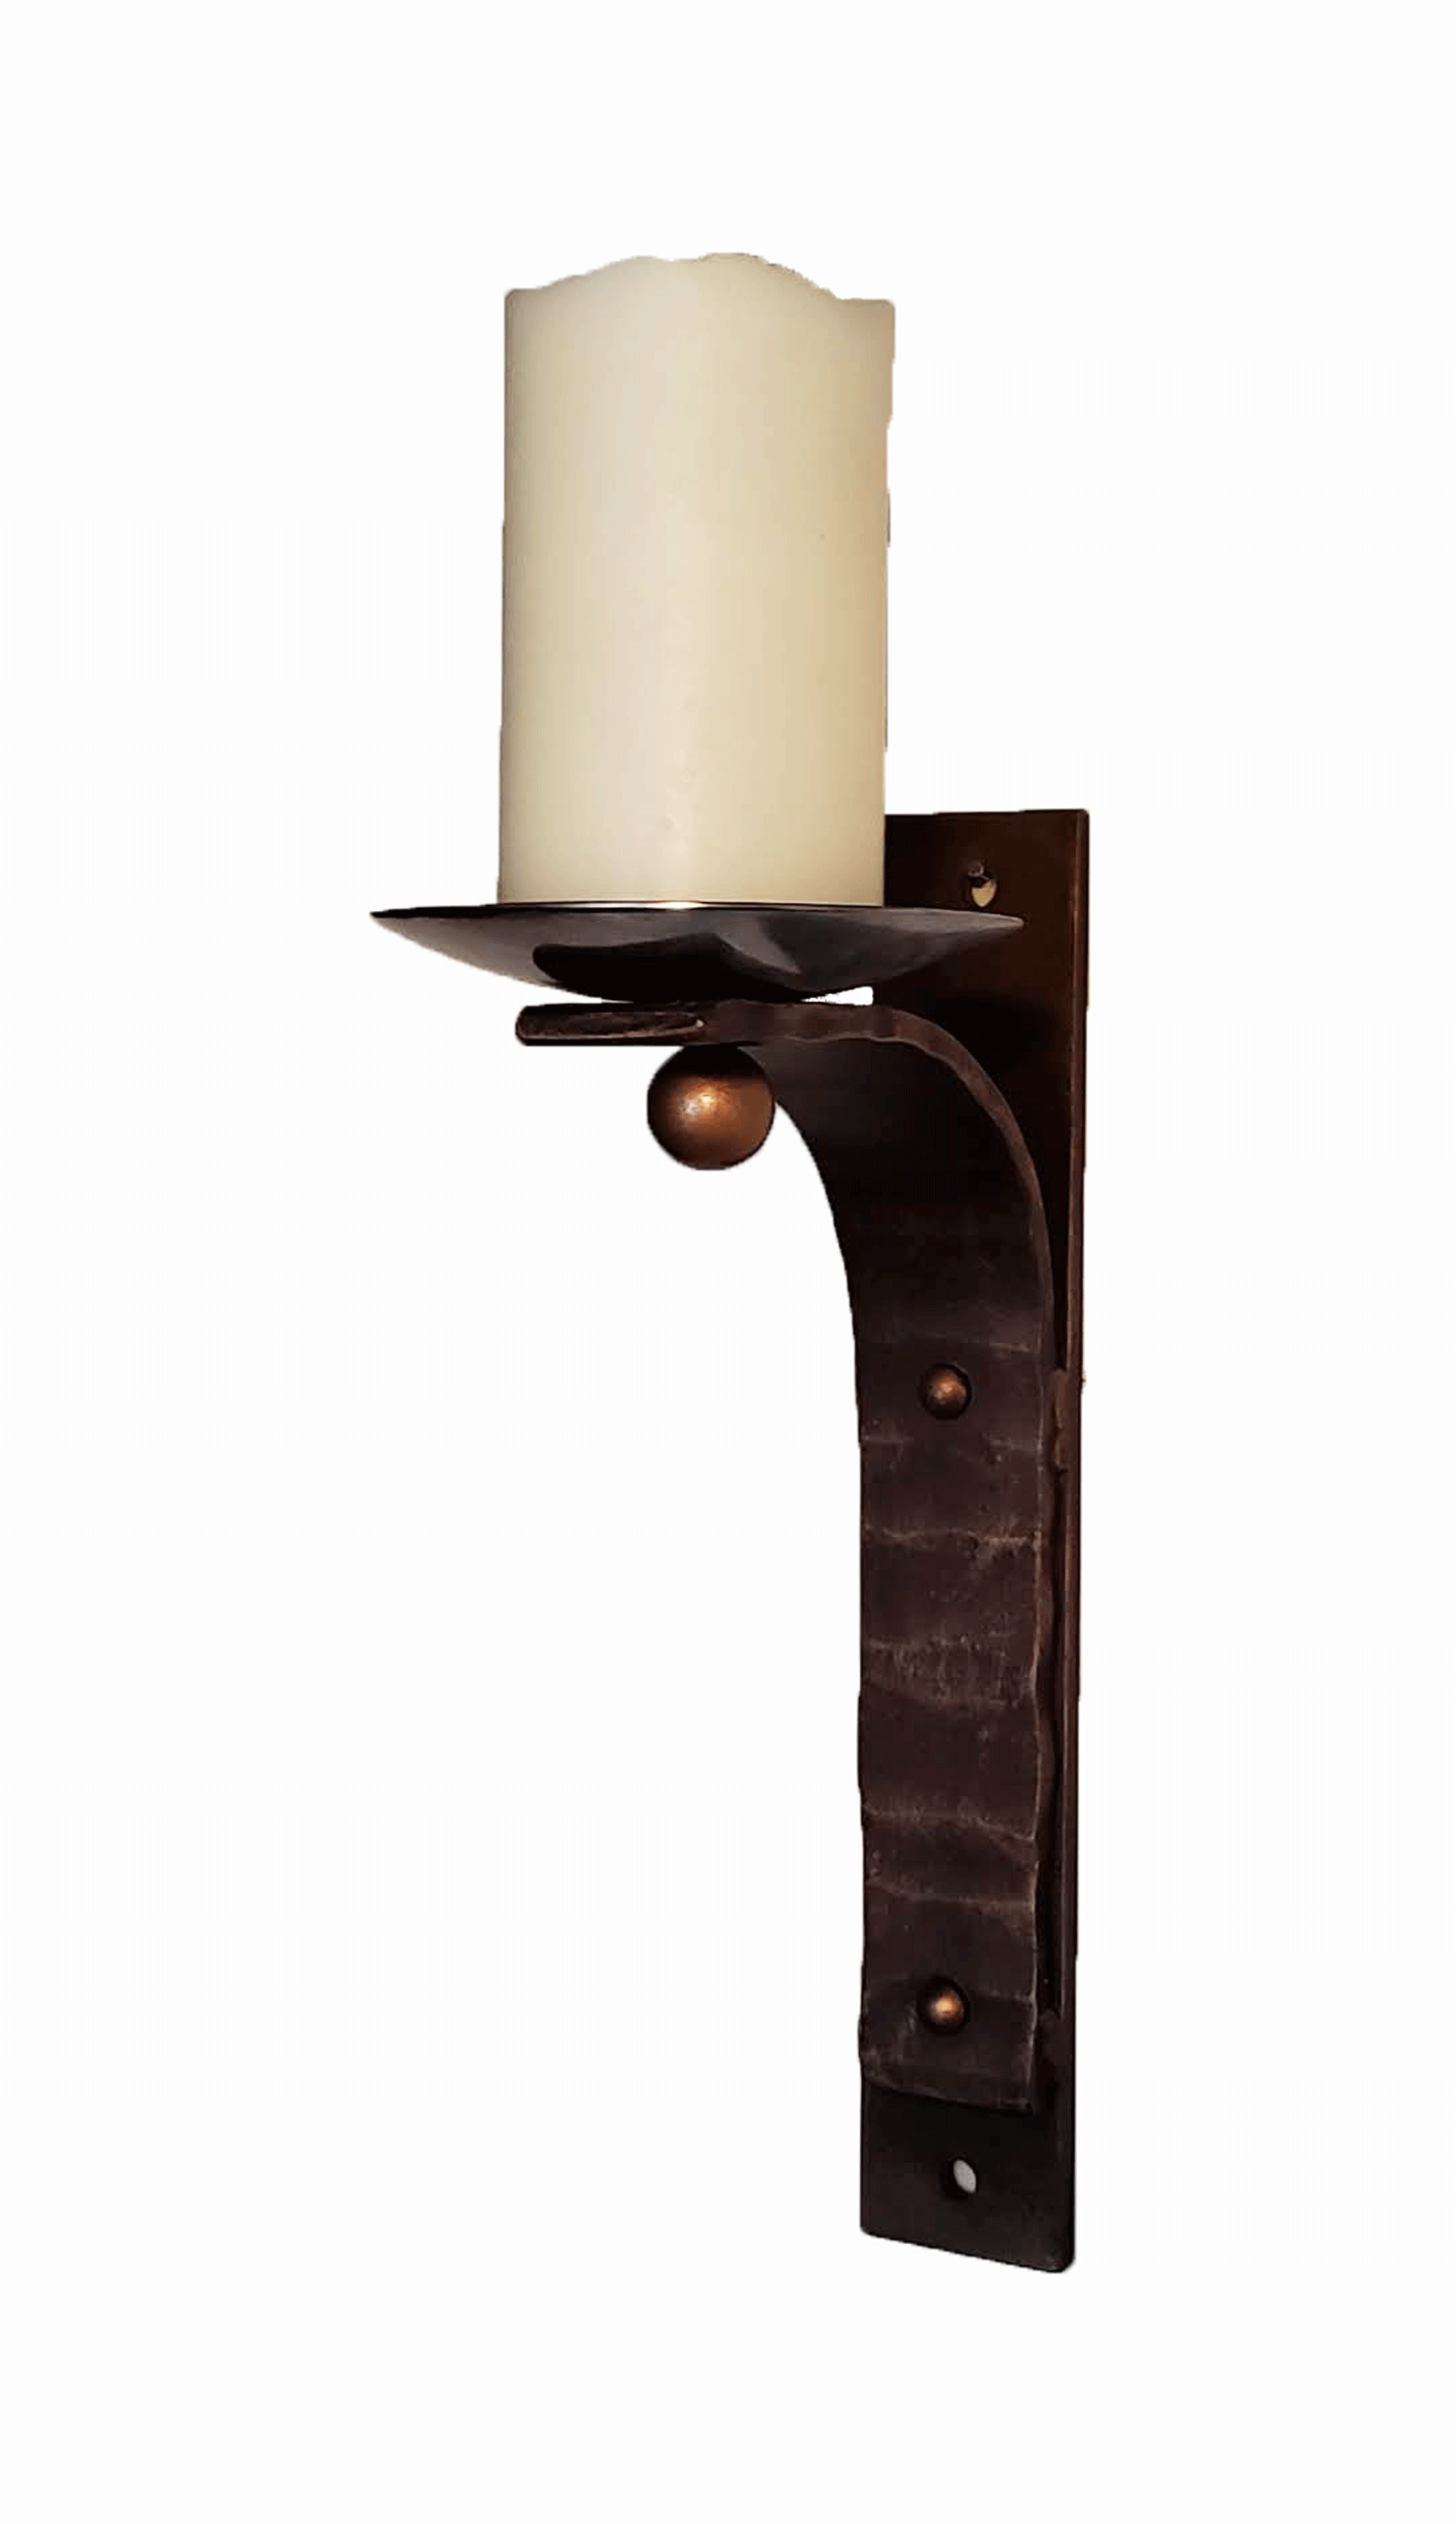 Stunning Wrought Iron Wall Candle Sconce-Handcrafted ... on Iron Wall Sconces For Candles id=65960